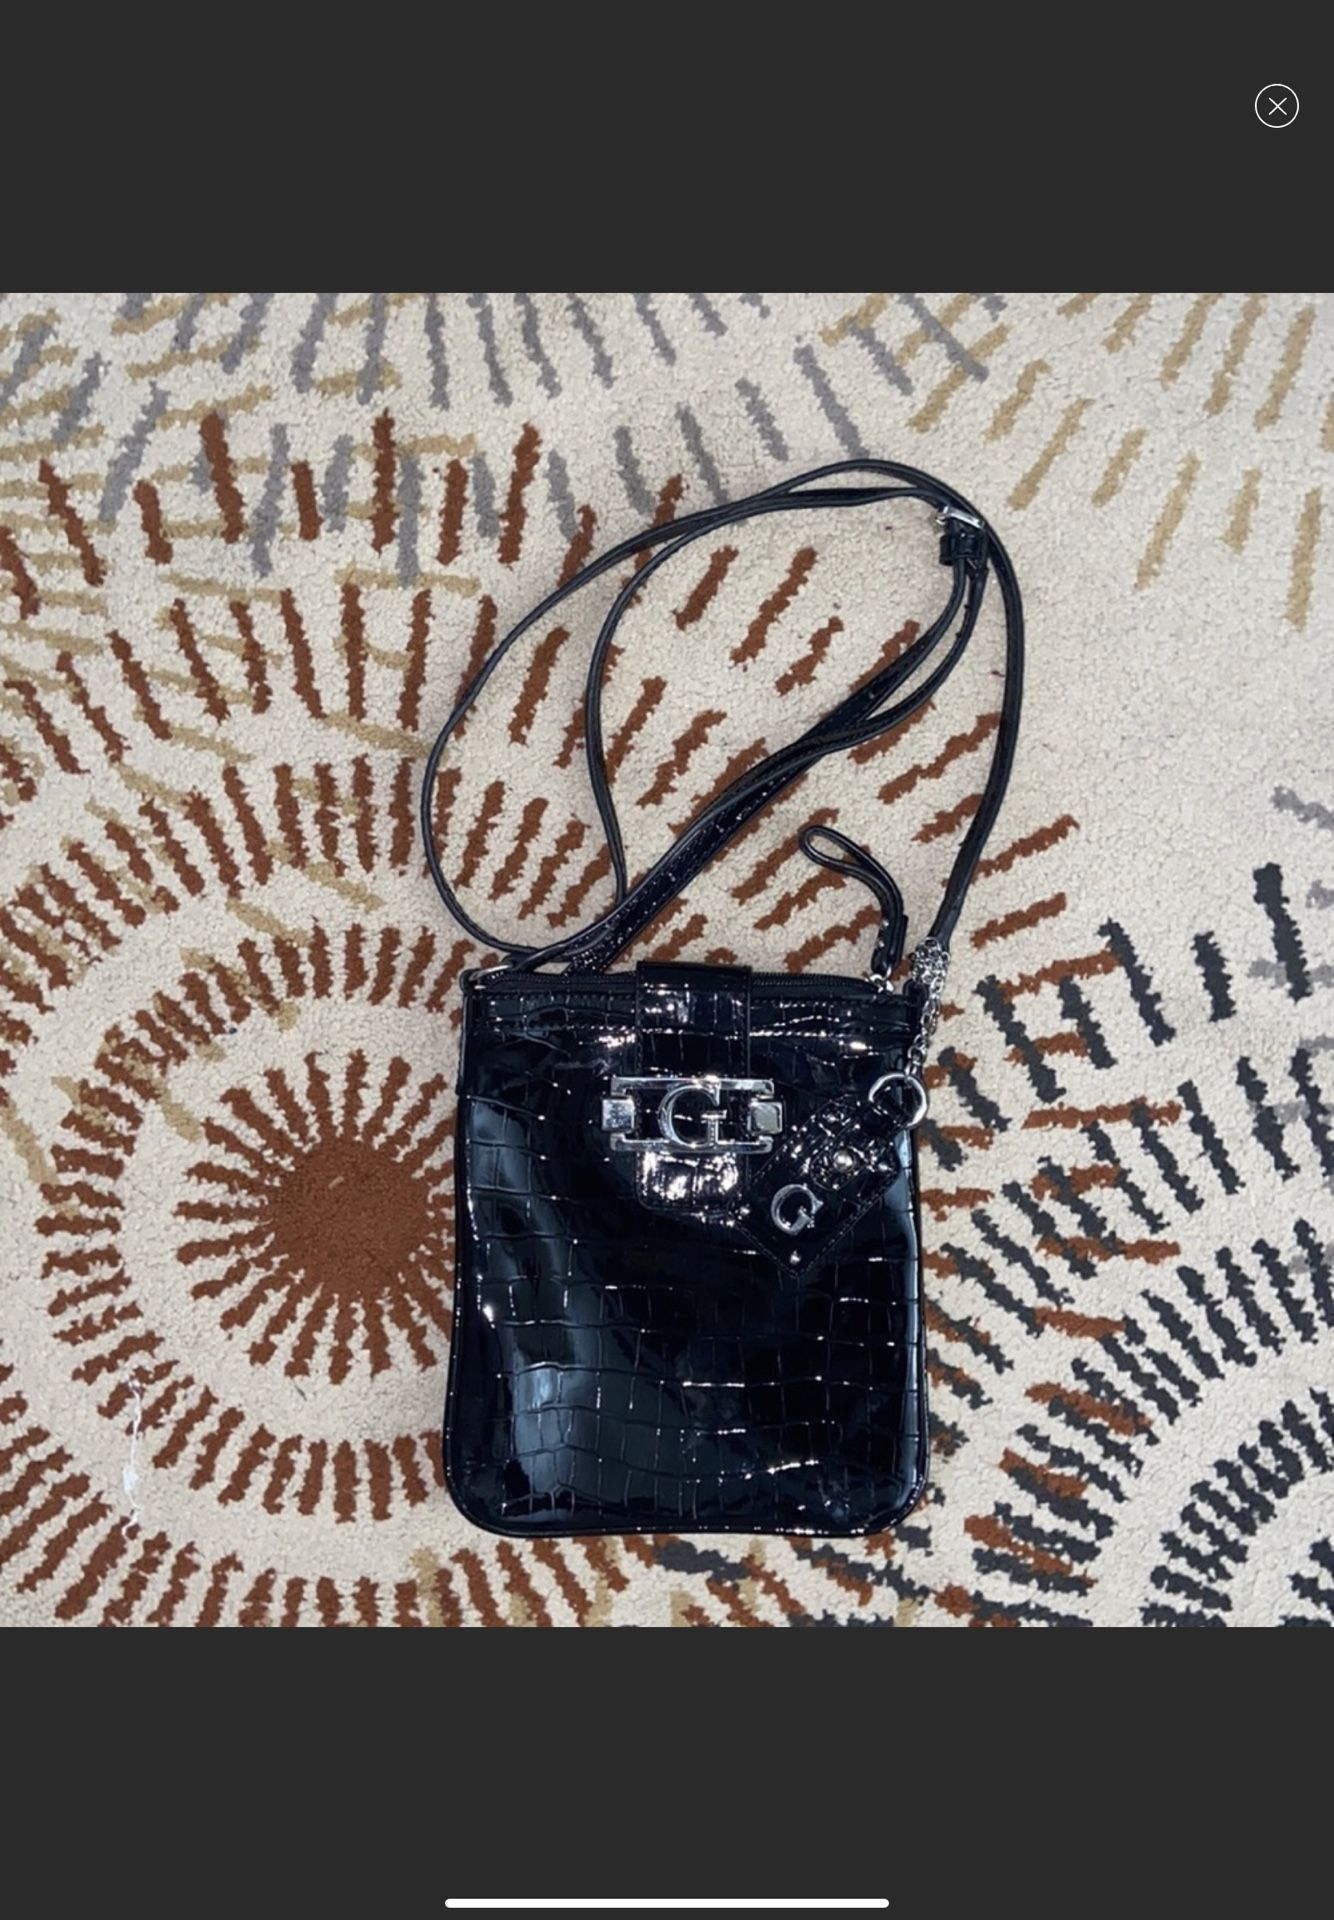 Guess croc patent leather crossbody bag